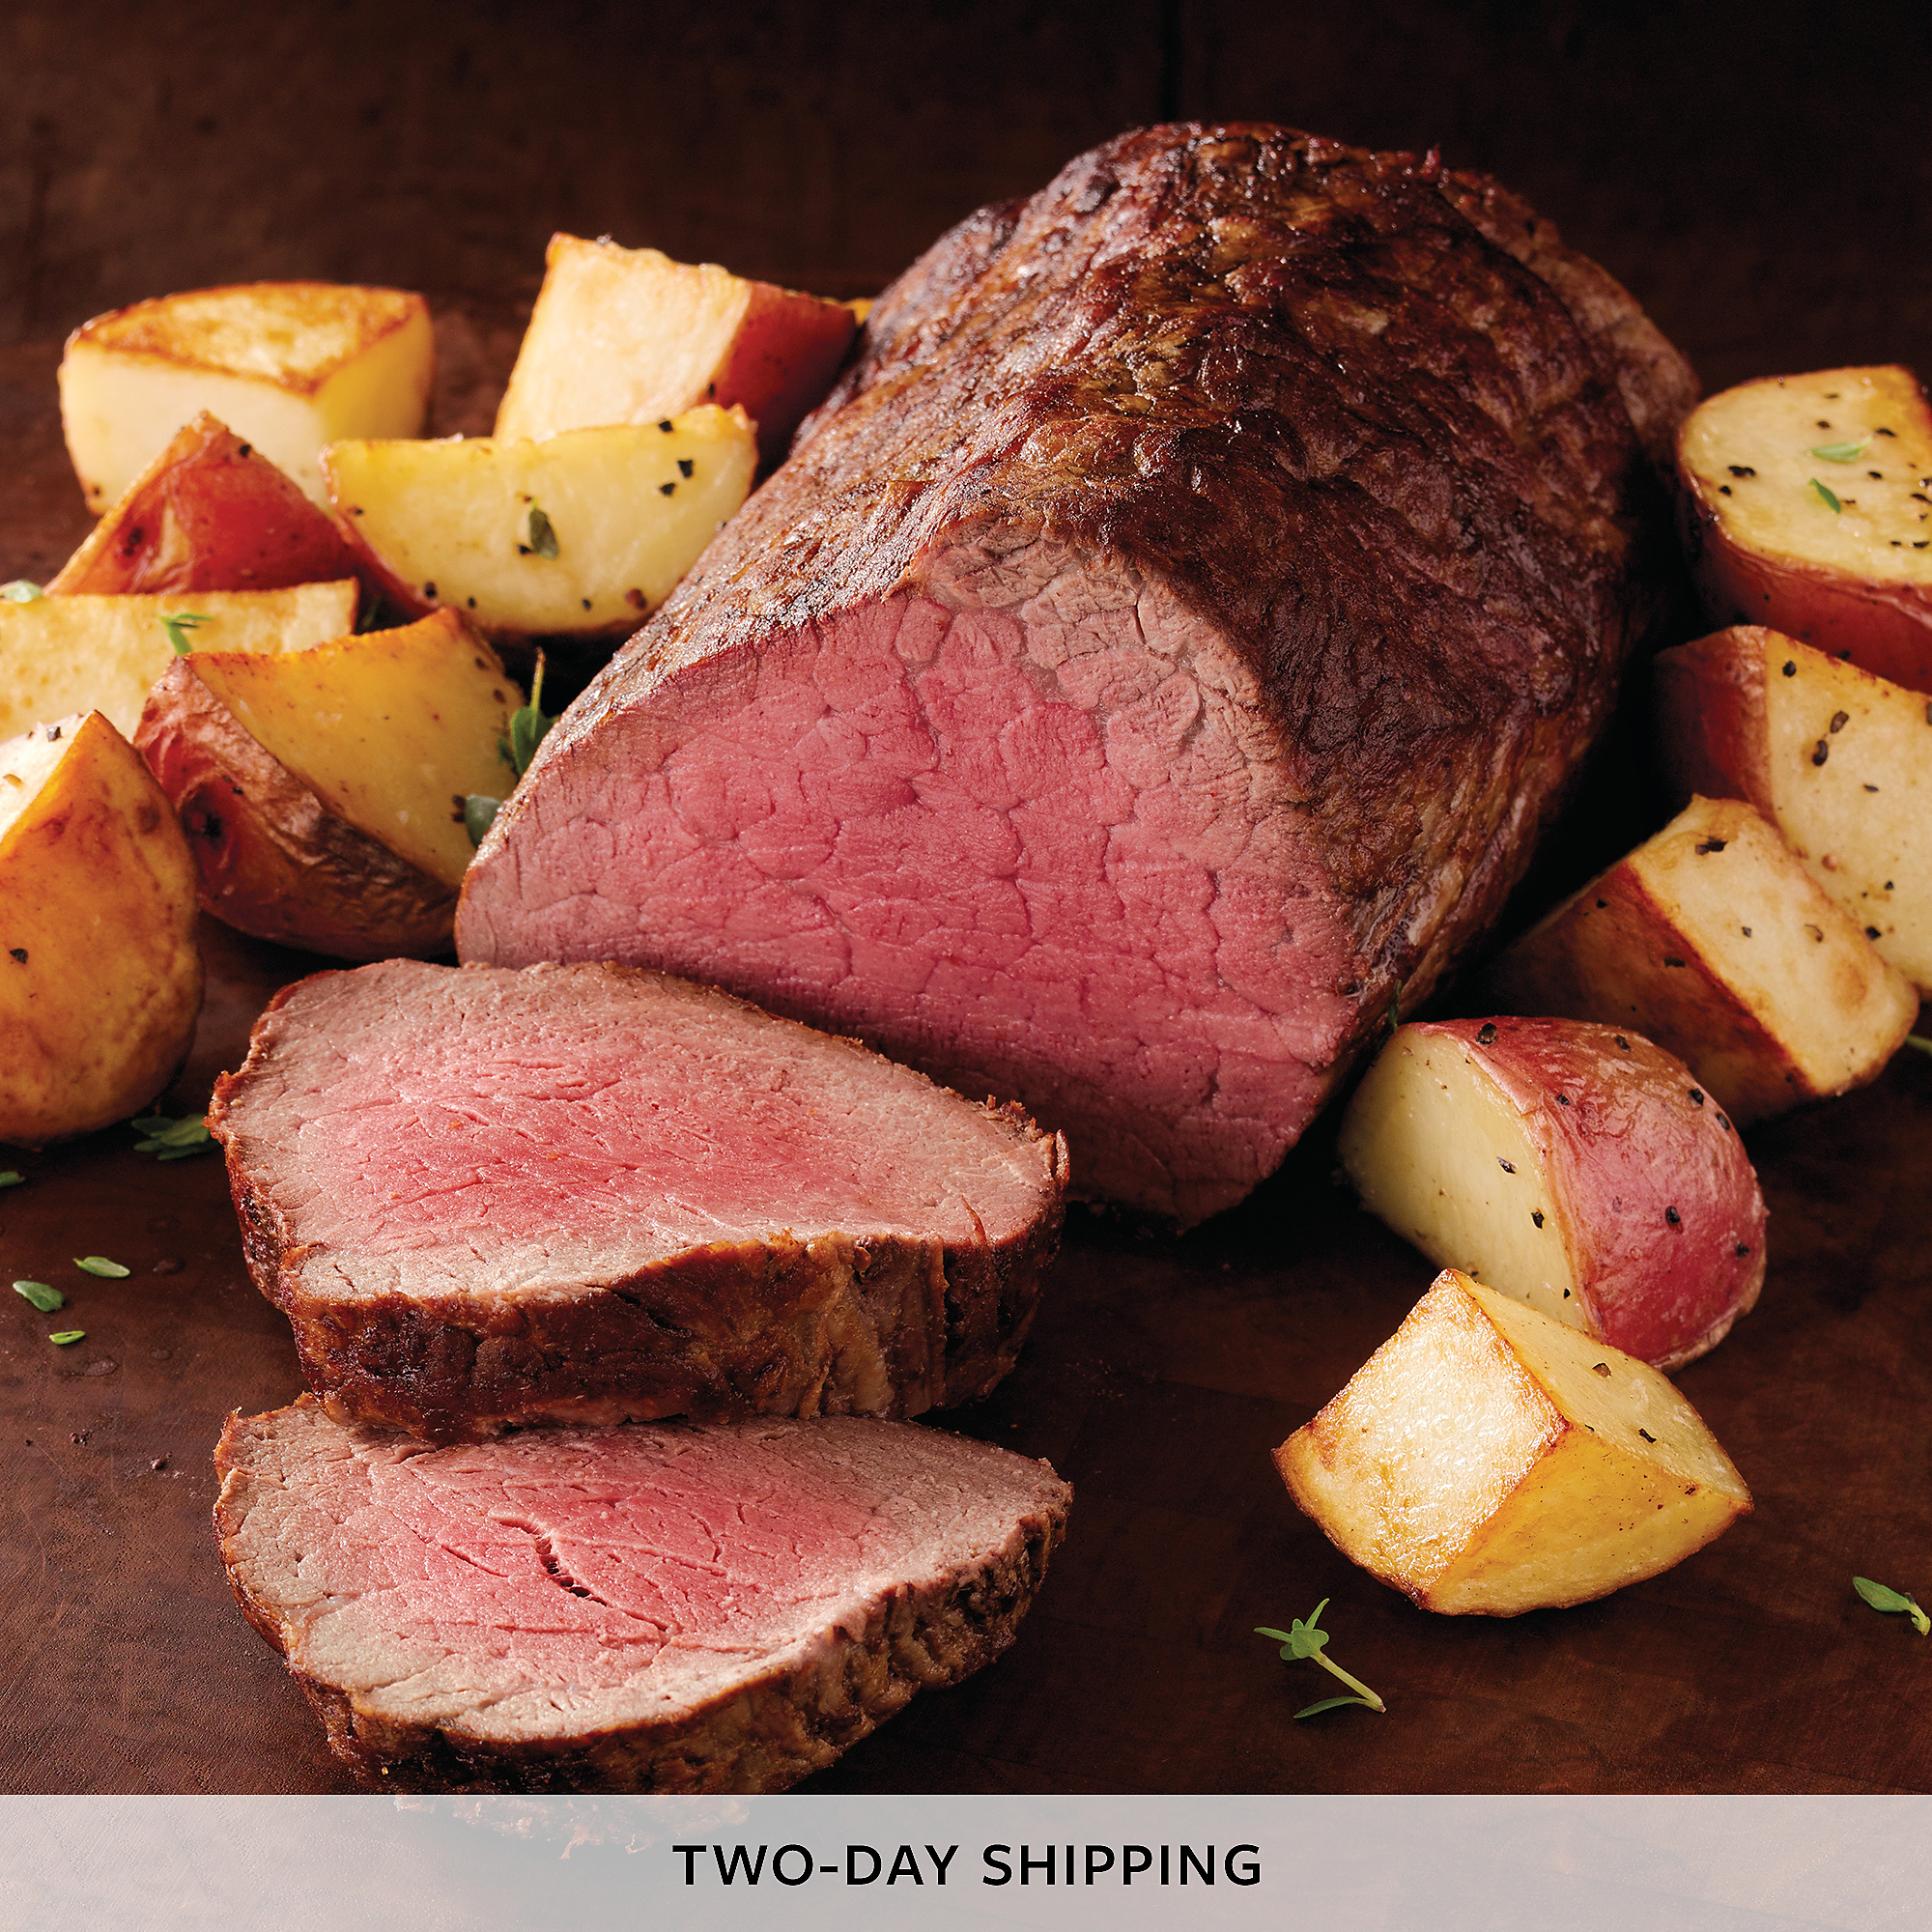 Chateaubriand buy gourmet meat online harry david for Buy chateaubriand